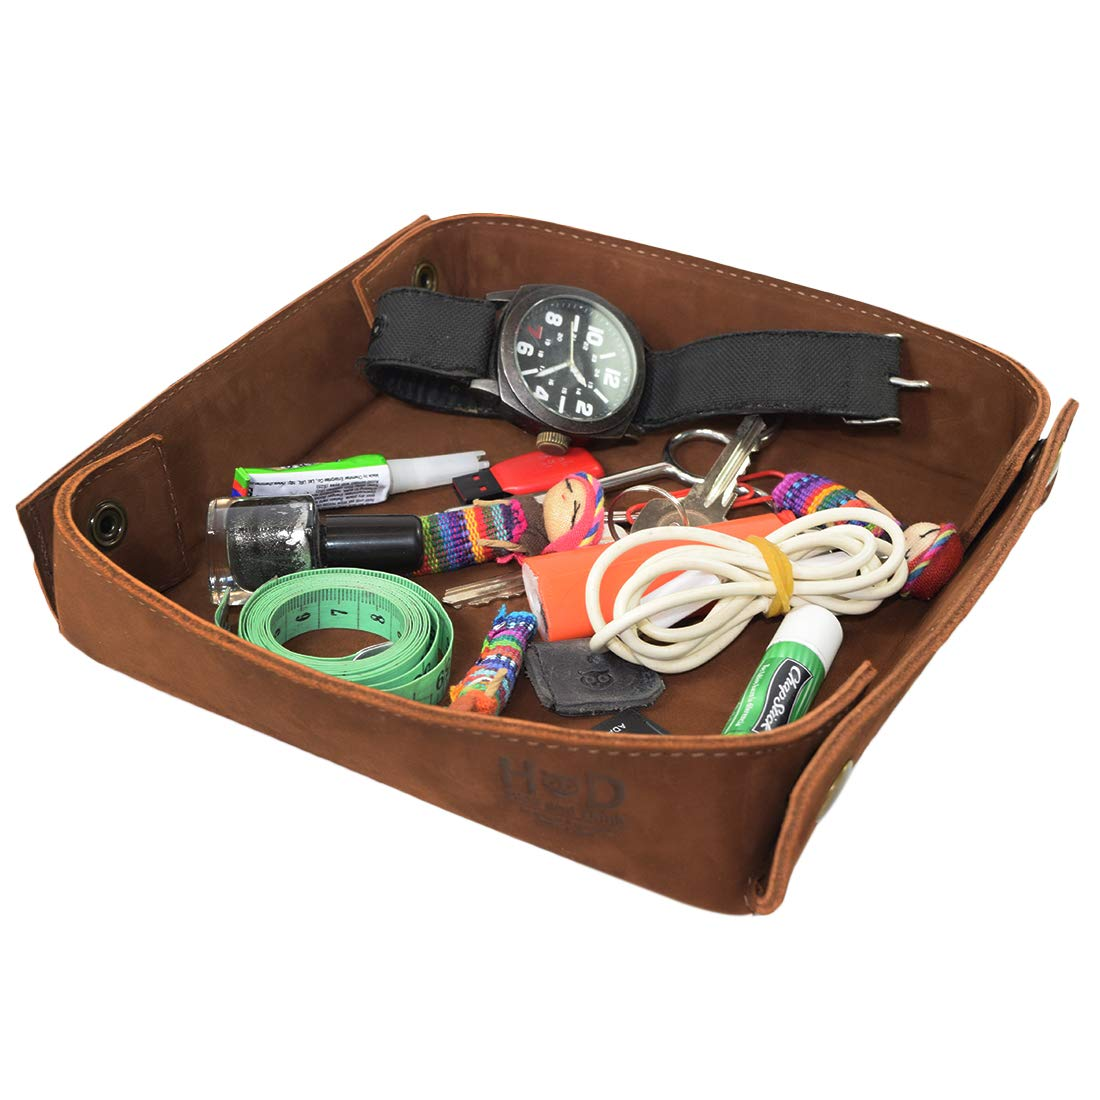 Hide & Drink, Leather Catchall Change Keys Coins Jewels Box Tray Big Storage Handmade Includes 101 Year Warranty :: Swayze Suede